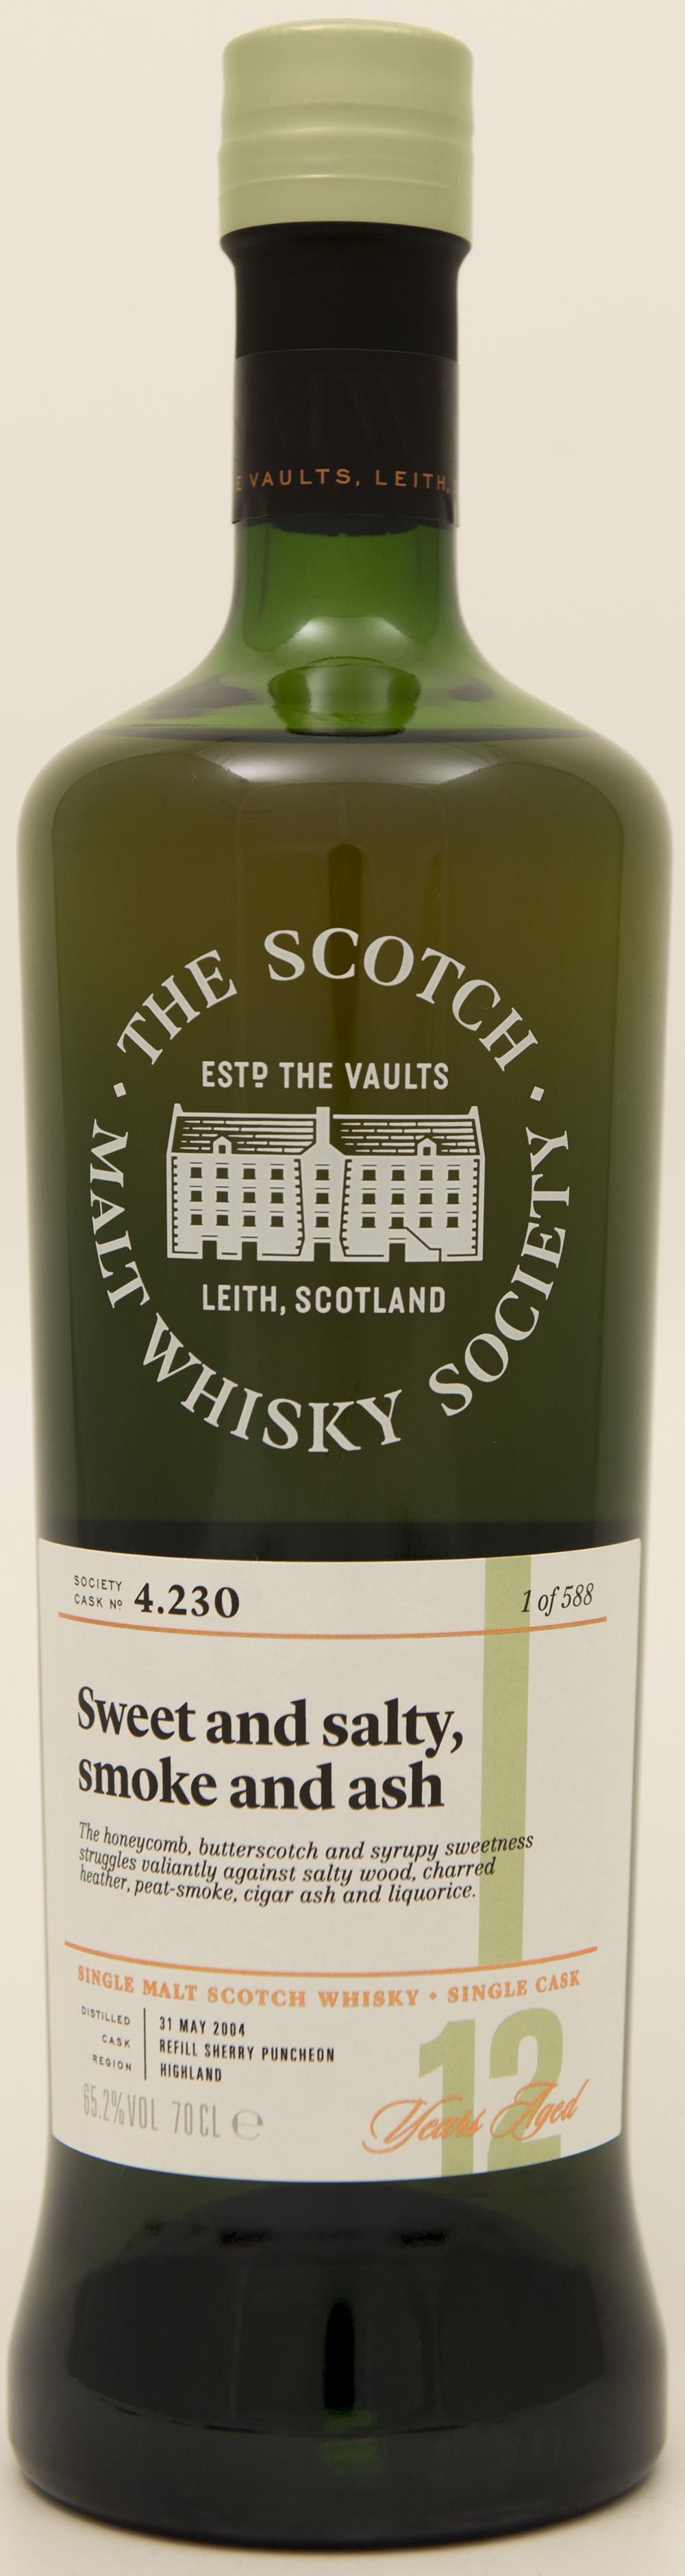 Billede: DSC_3665 - SMWS 4.230 - Sweet and salty, smoke and ash.jpg